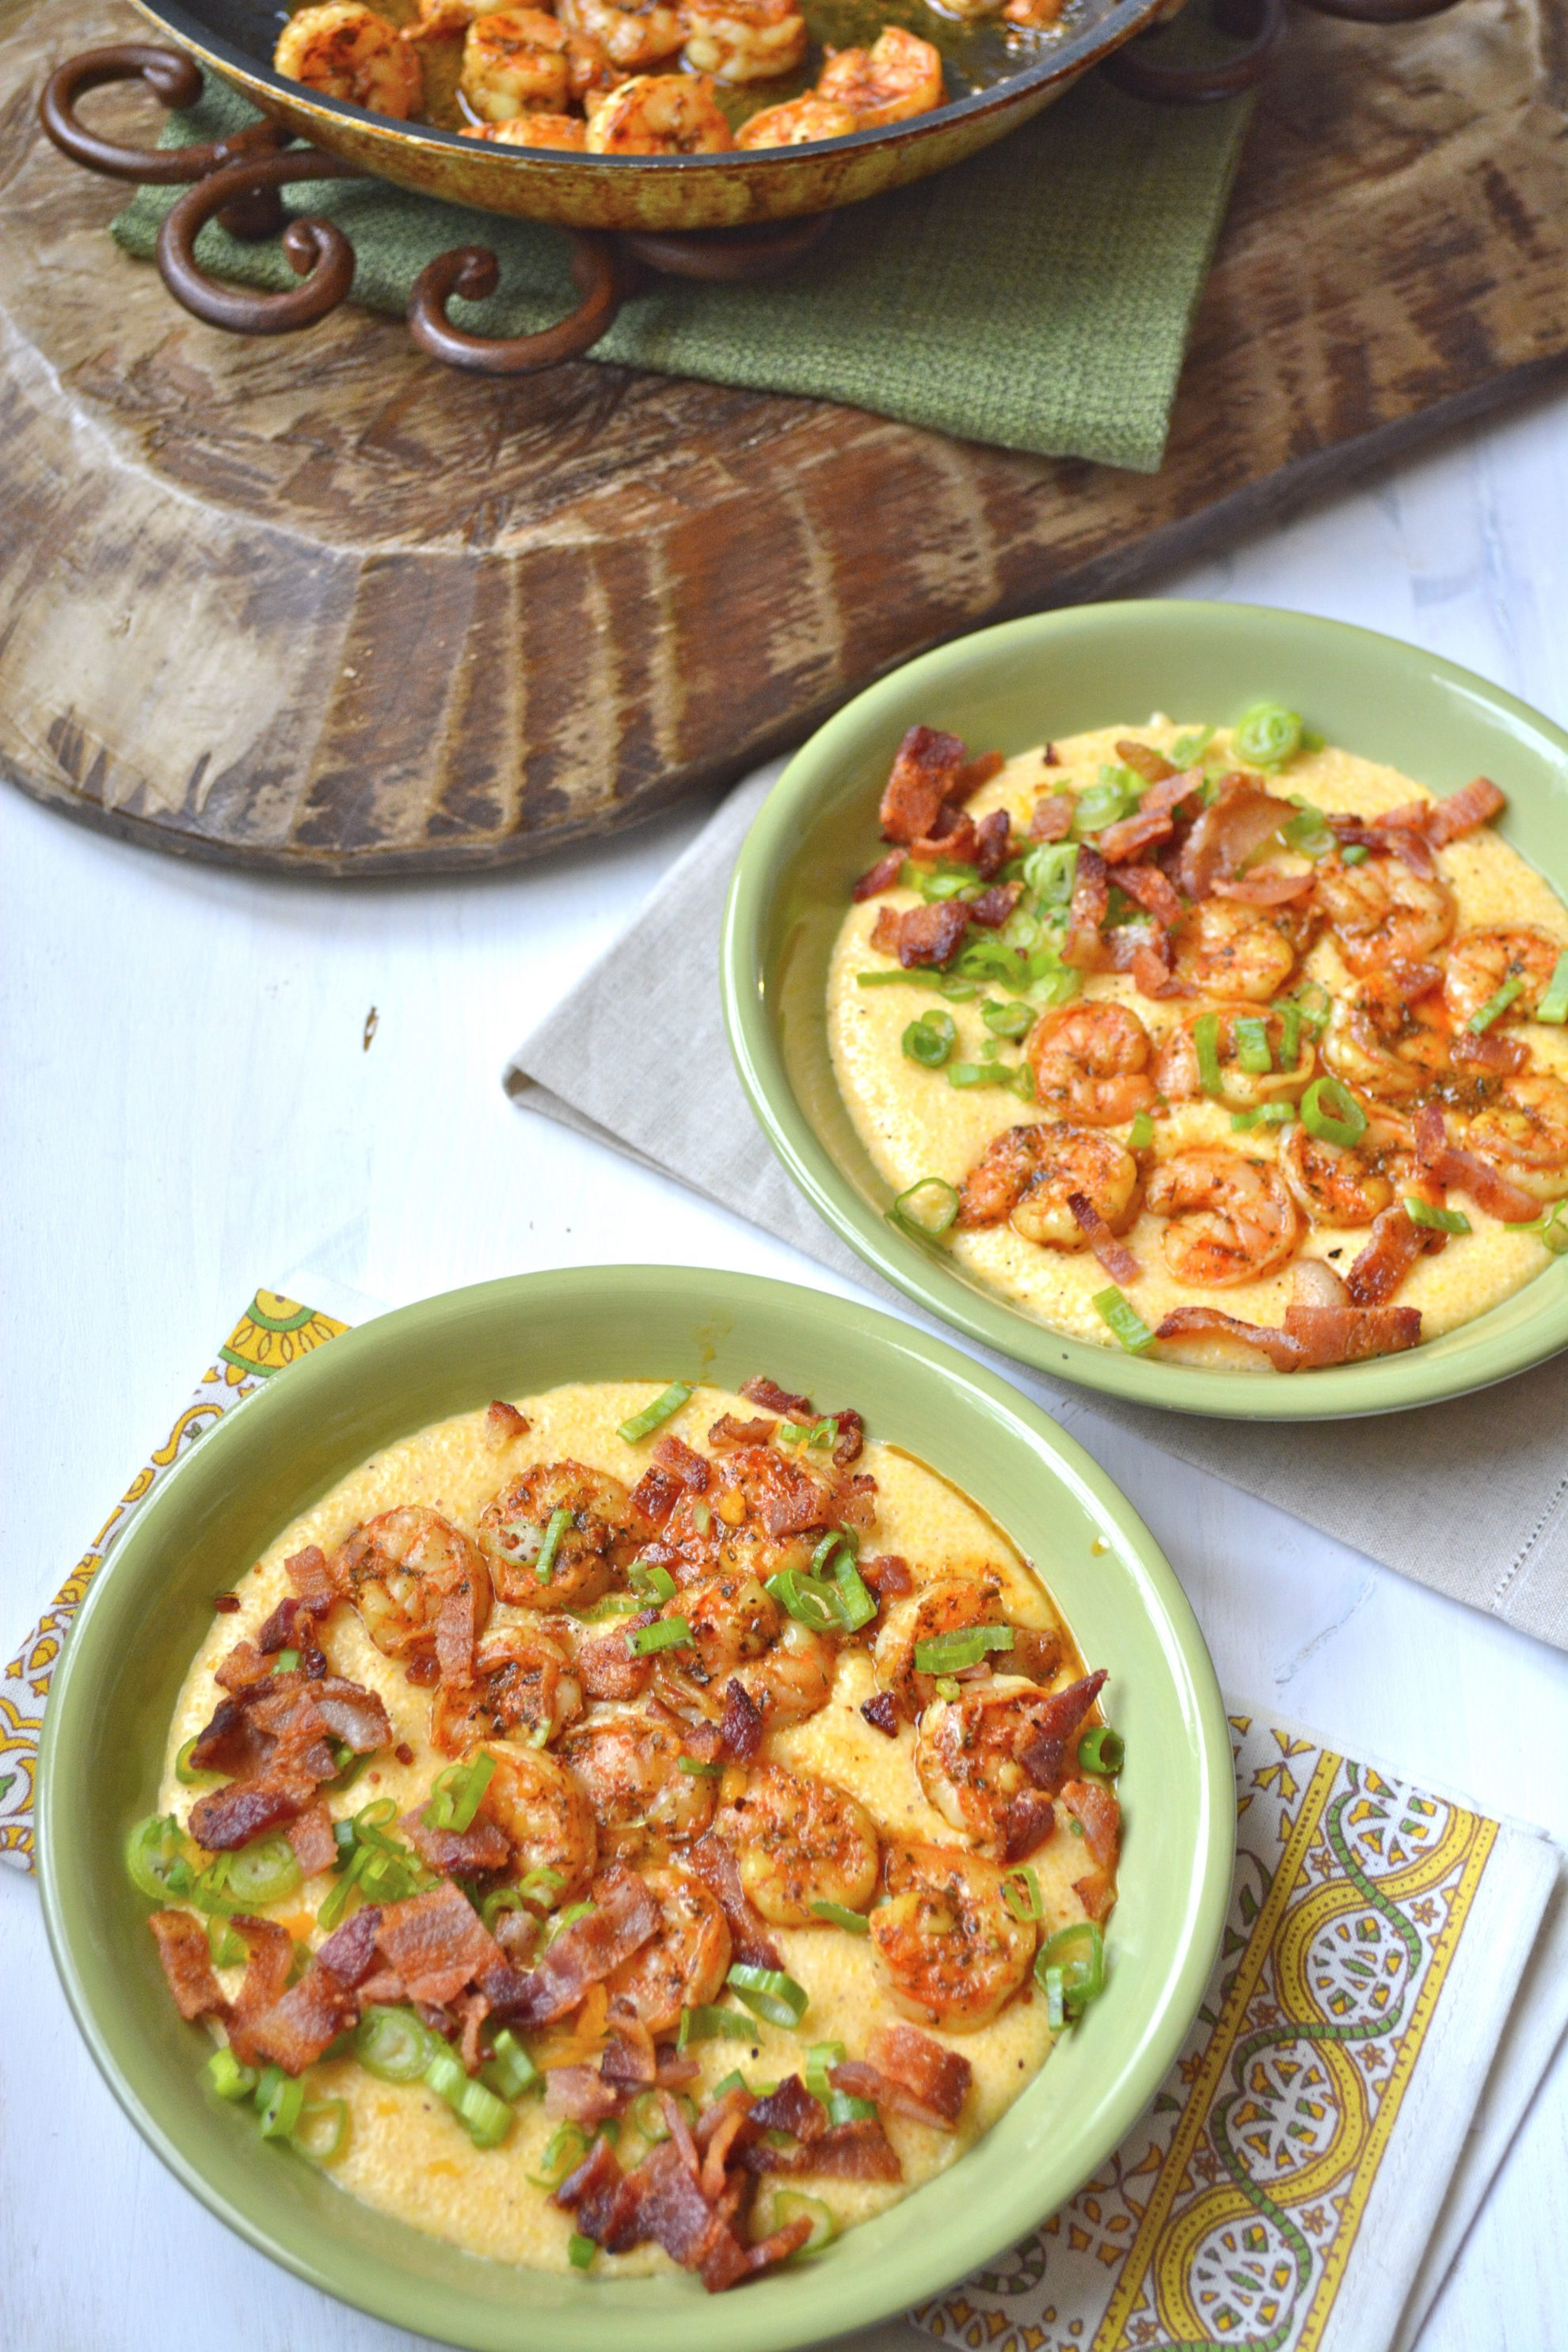 Easy Shrimp and Creamy Cheesy Grits! The ultimate southern meal! Cheesy grits, spicy shrimp, crispy bacon and fresh green onions make the ultimate comfort food!